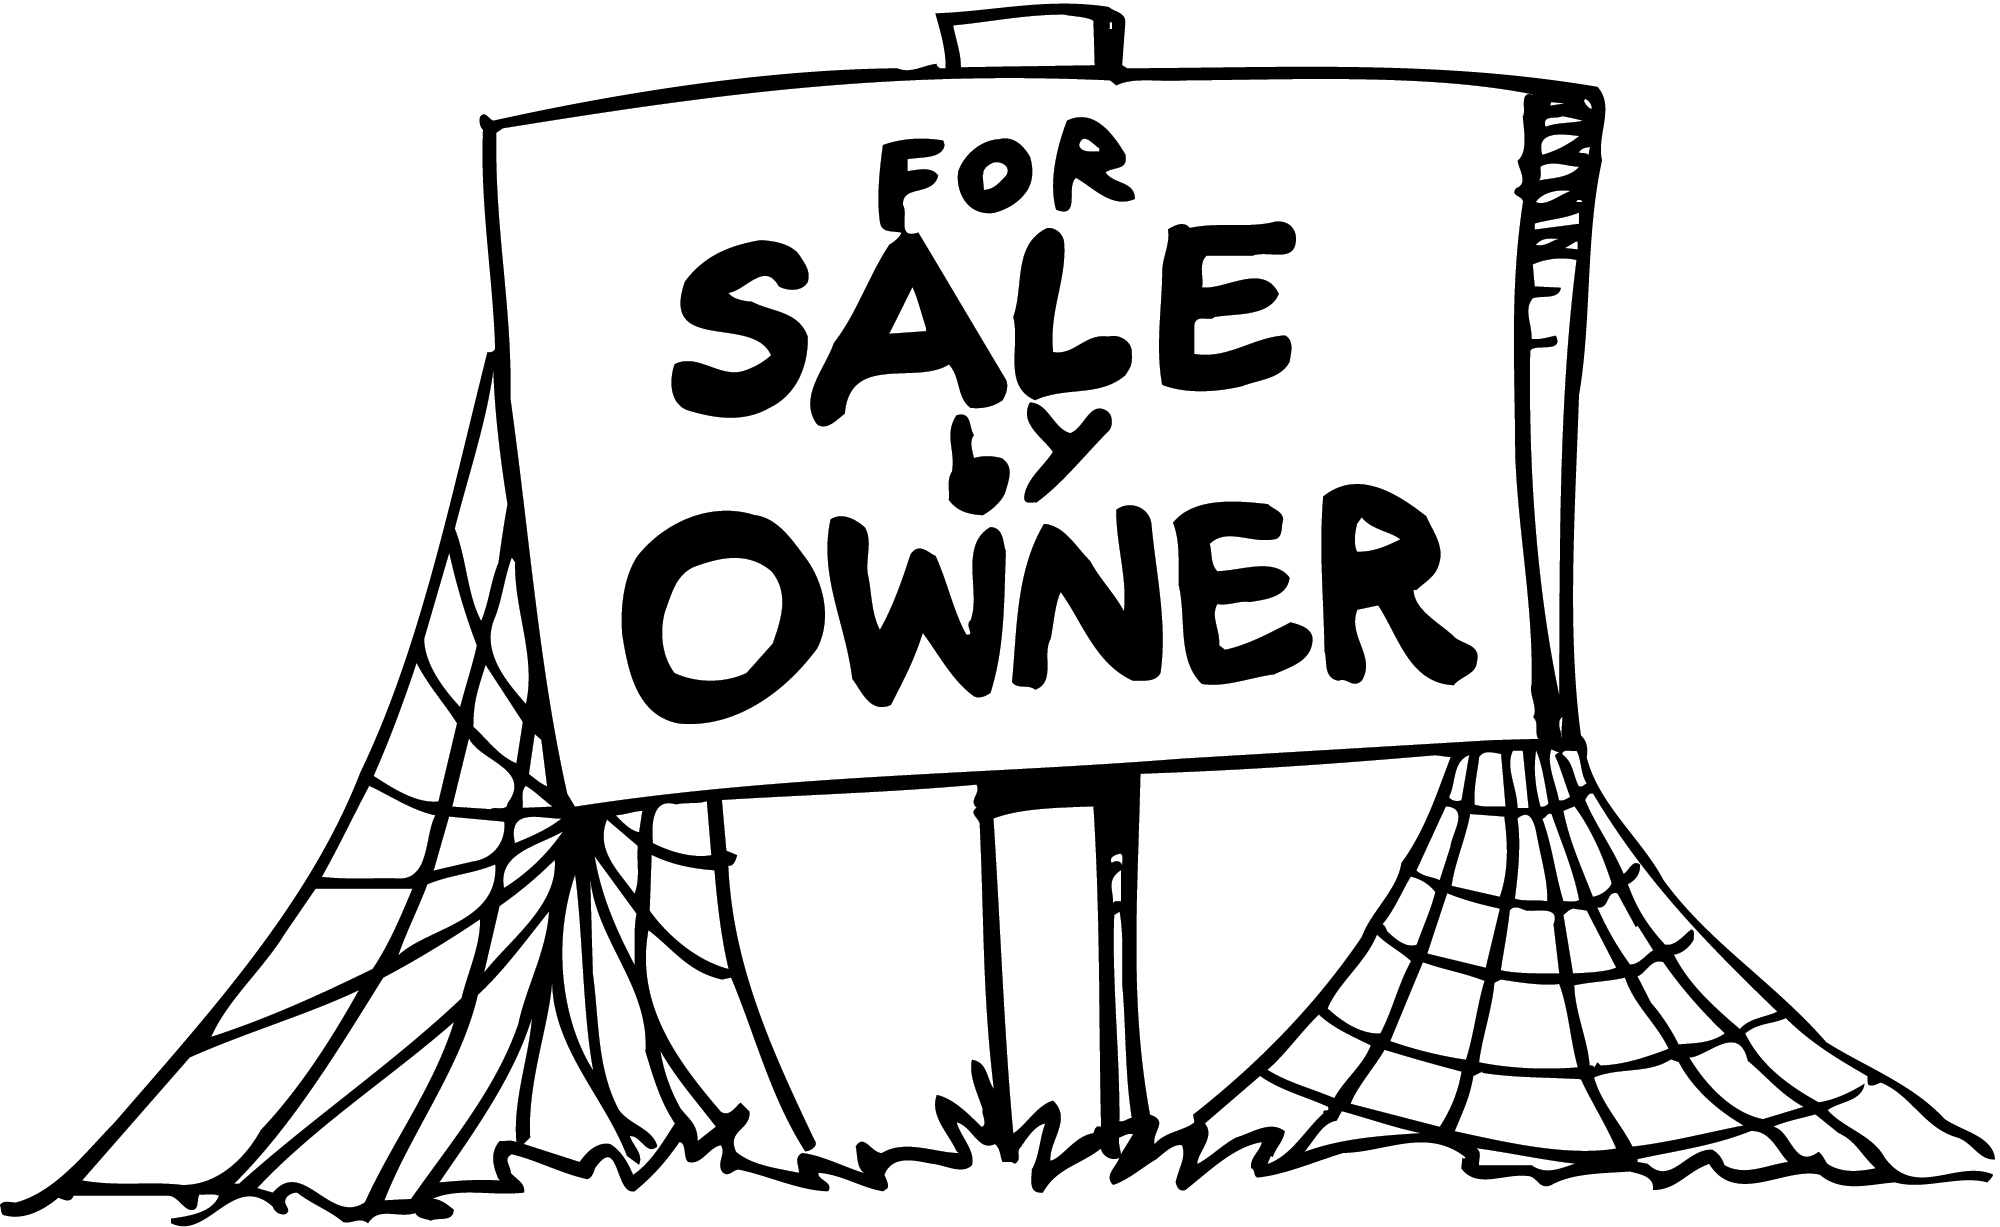 Real estate for sale by owner - For Sale By Owner Vs The Real Estate Agent